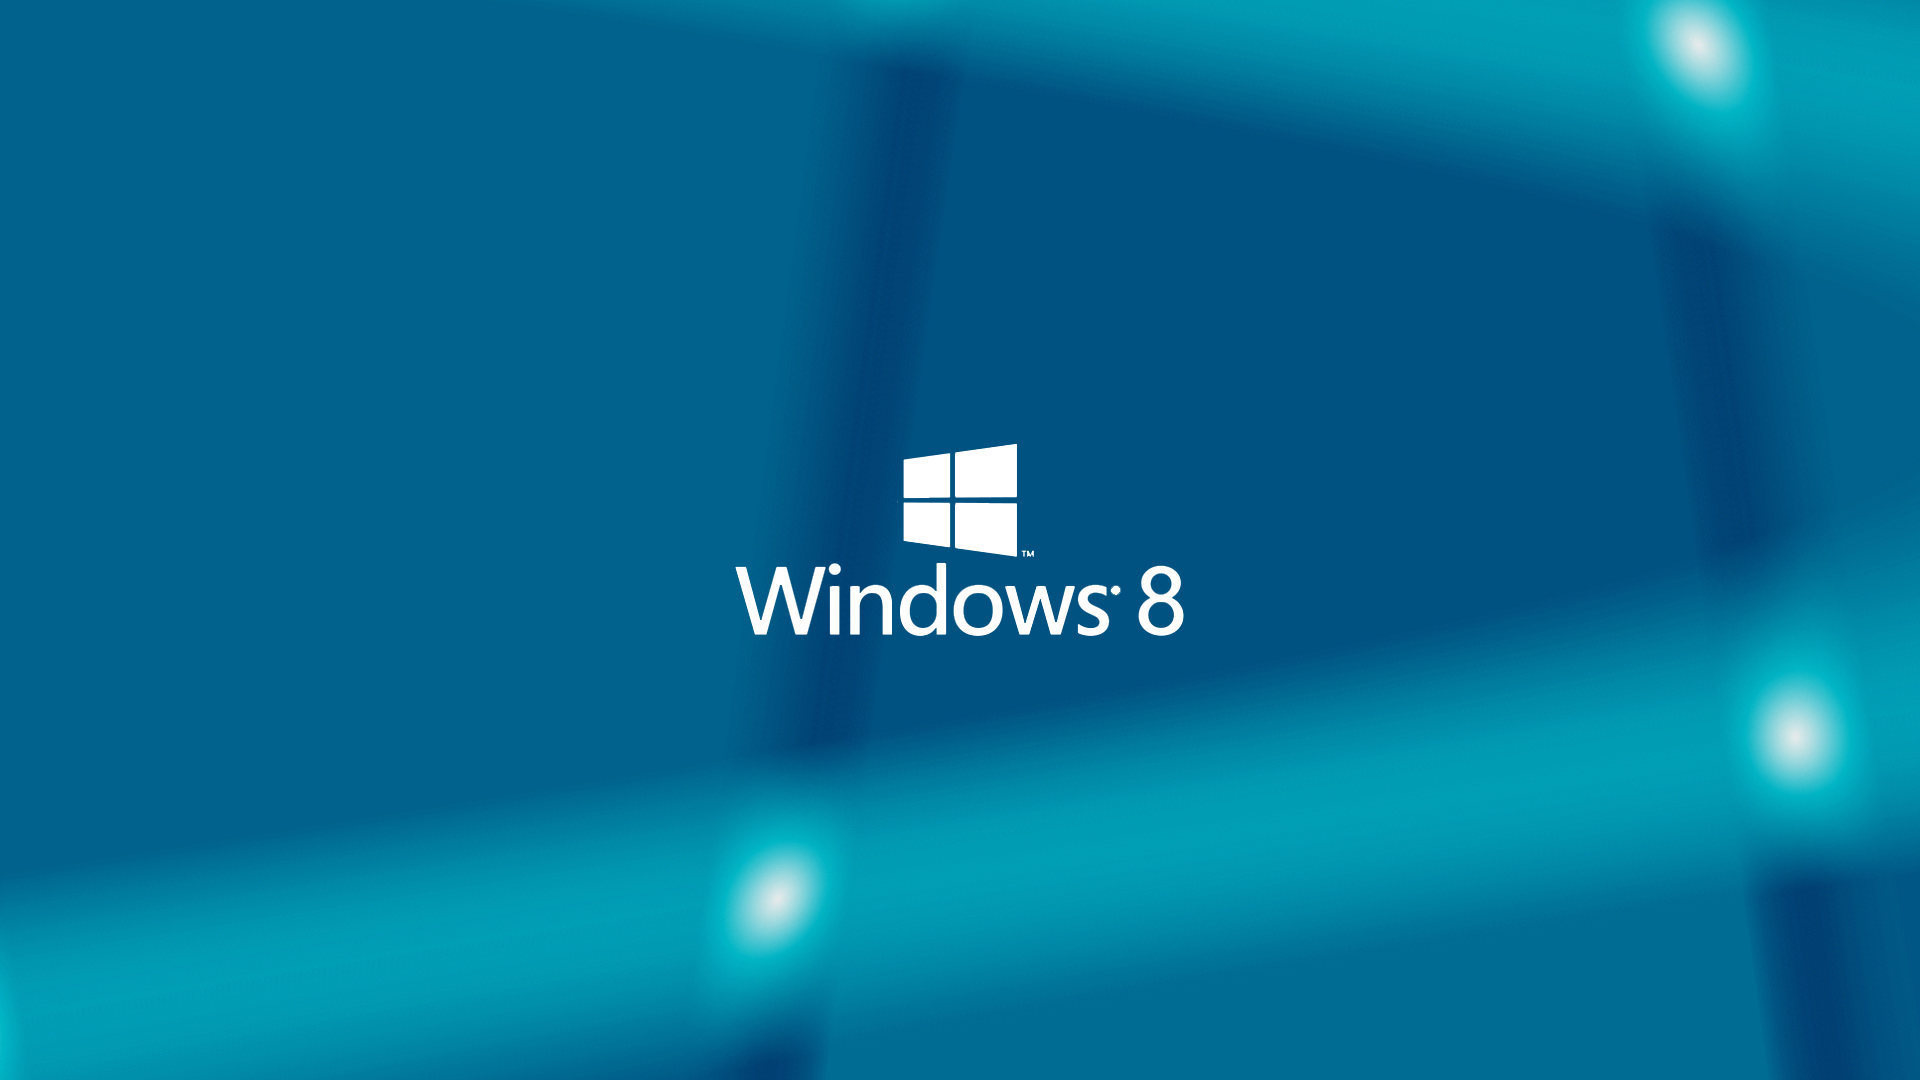 Windows-8-Wallpaper-4